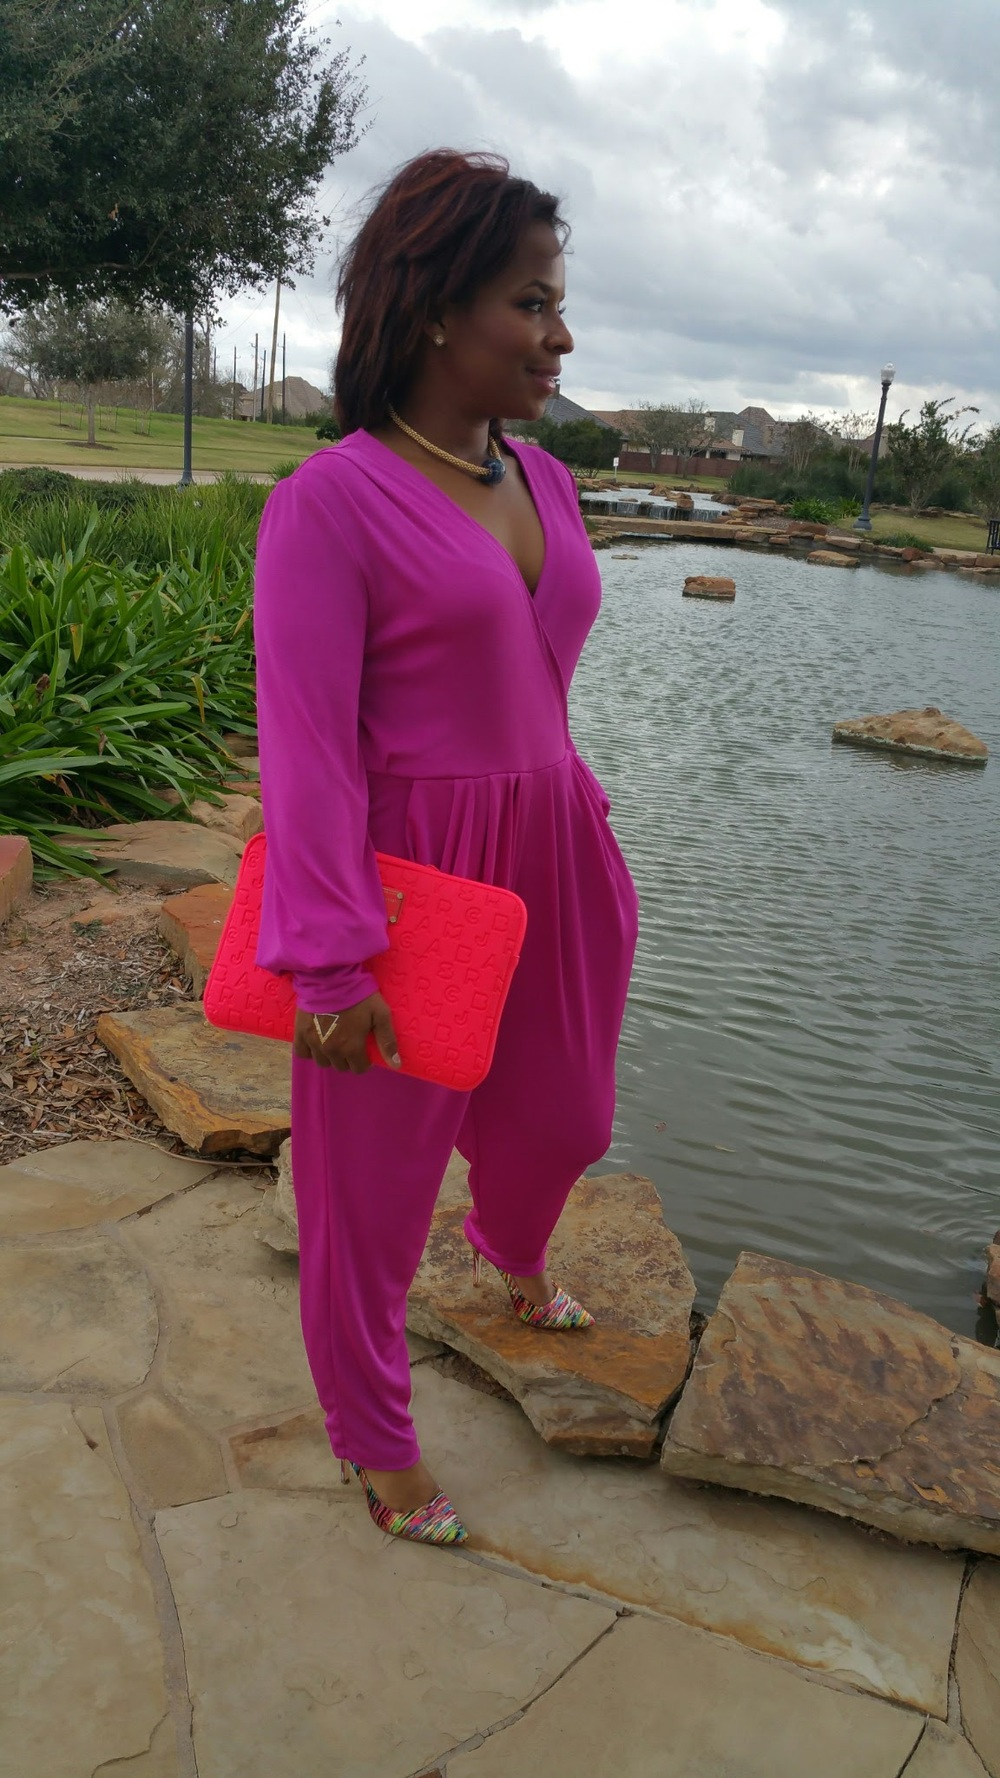 Magenta Jumpsuit by 3degreesdb.com, http://www.3degreesdb.com/3degreesdb-three-generations-blog/2014/12/17/magenta-jumpsit